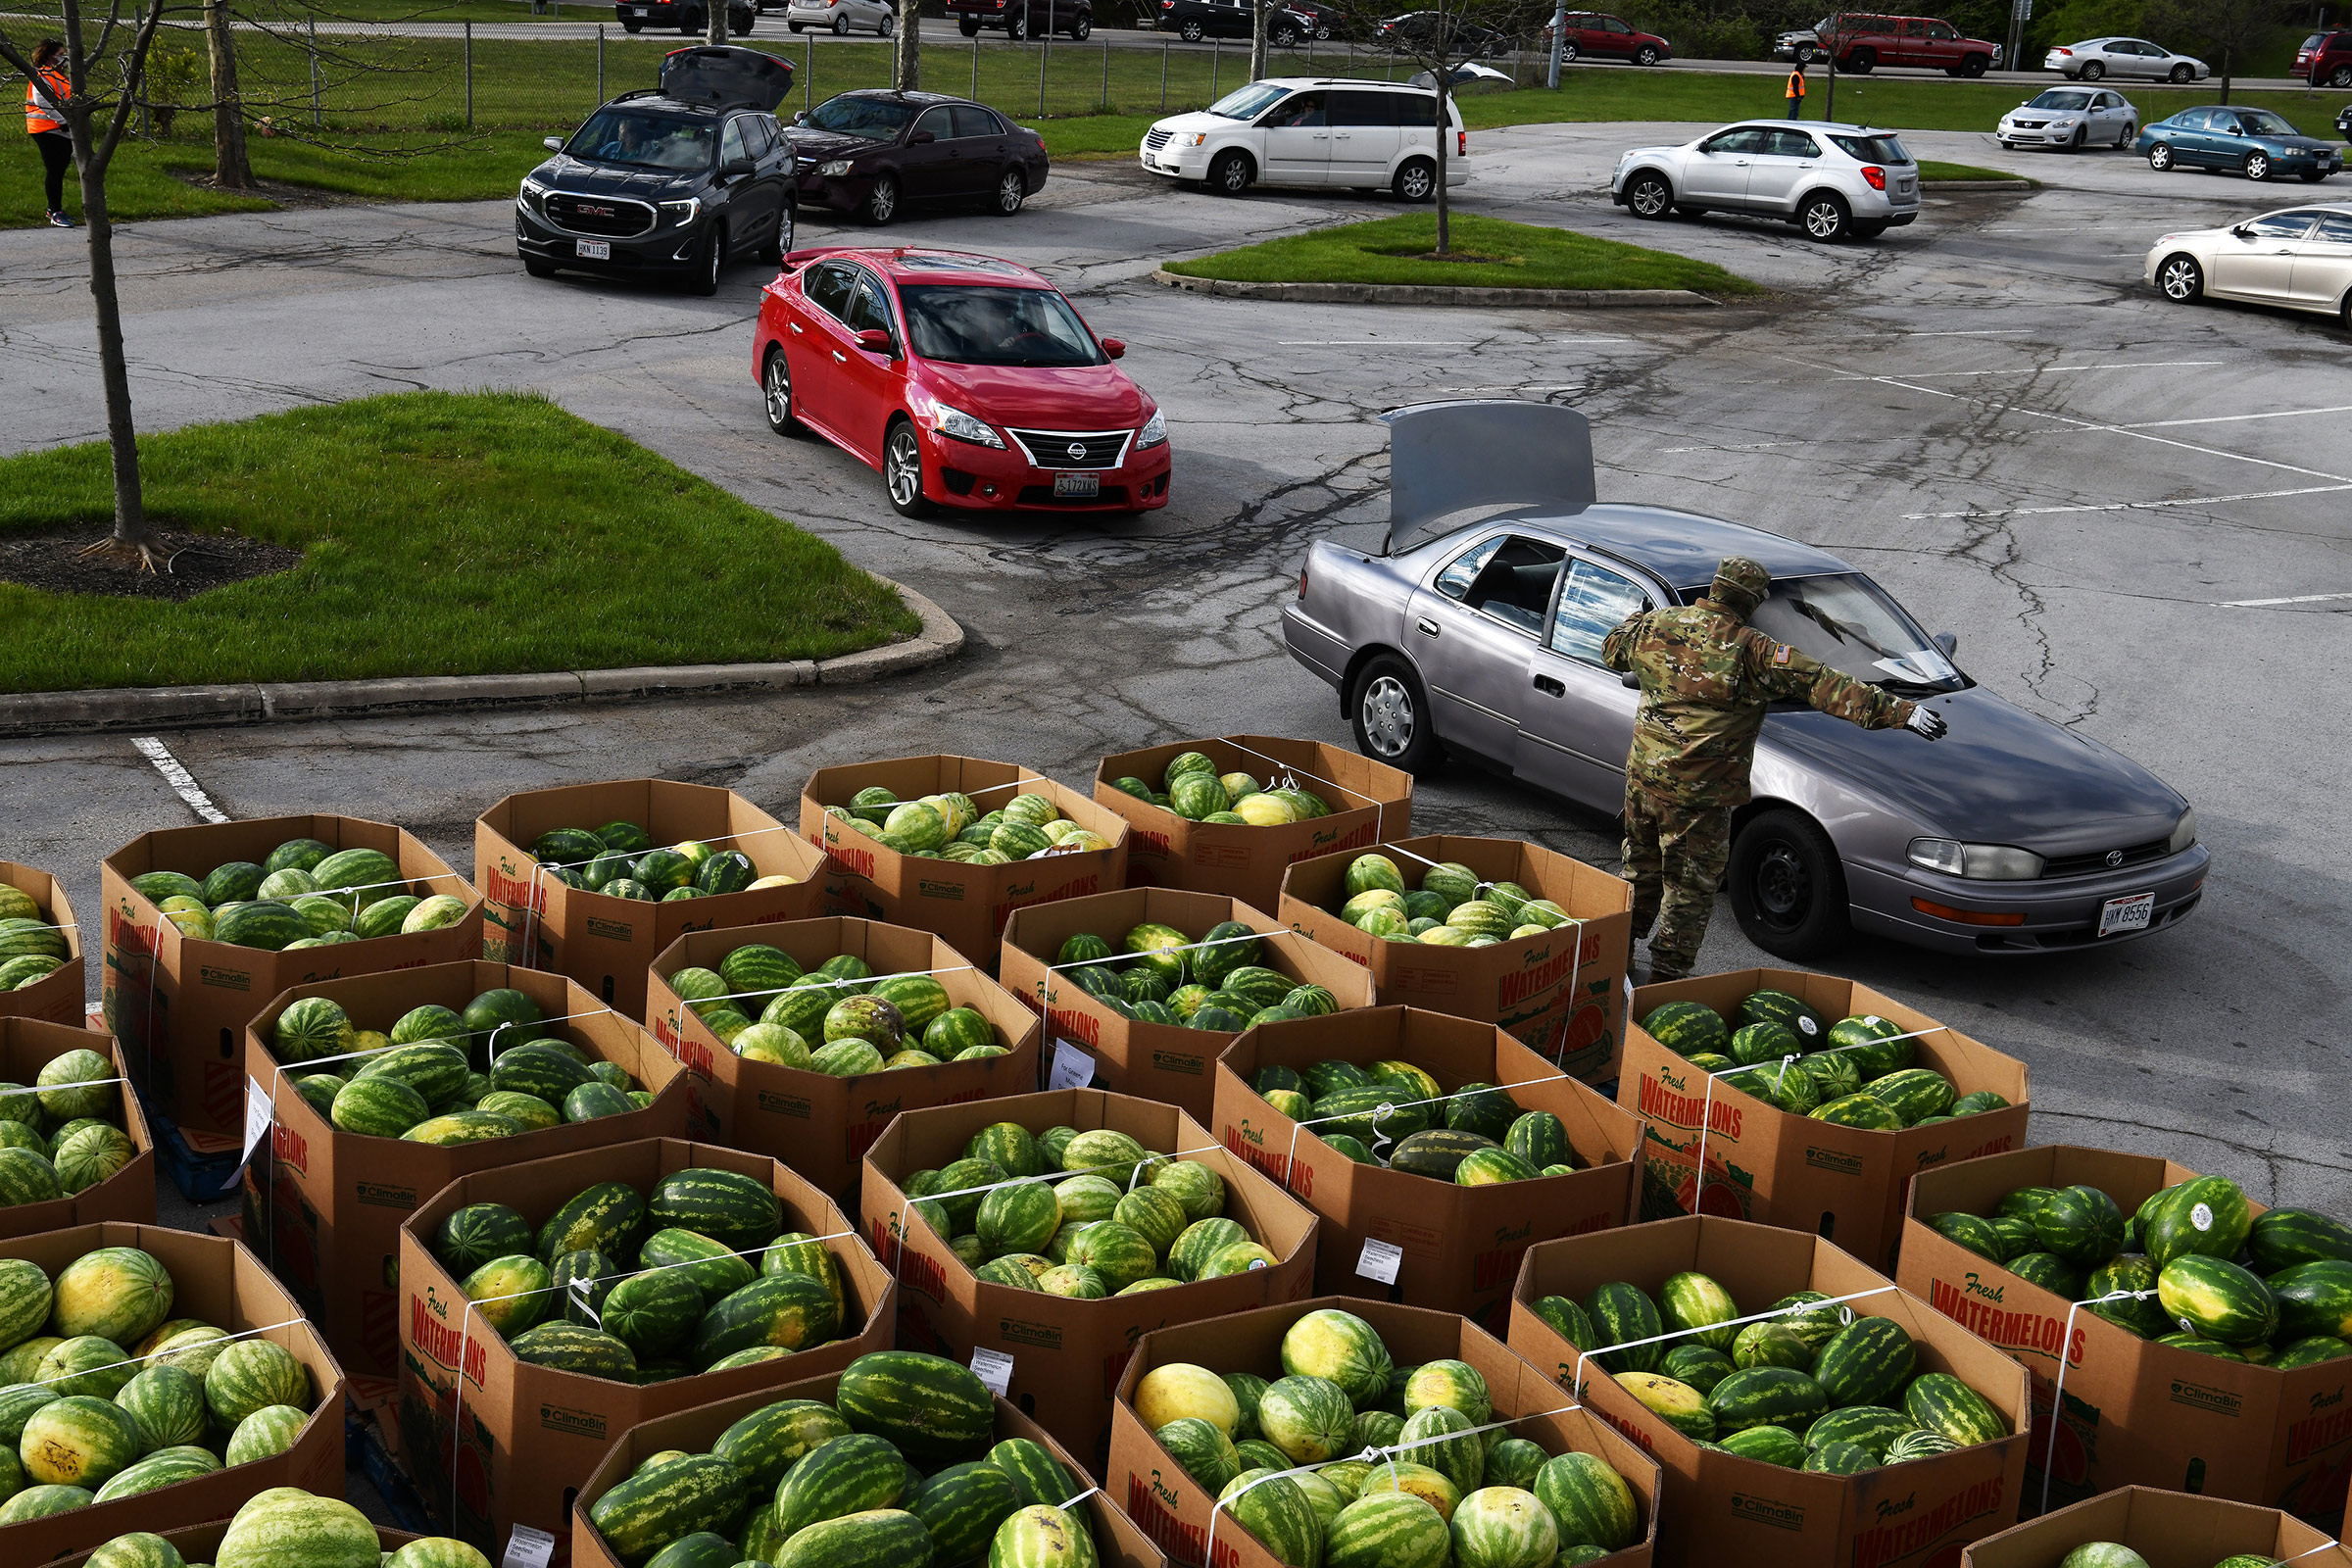 Hundreds of members of the Ohio National Guard were activated March 18, 2020 to support food distribution efforts across Ohio.